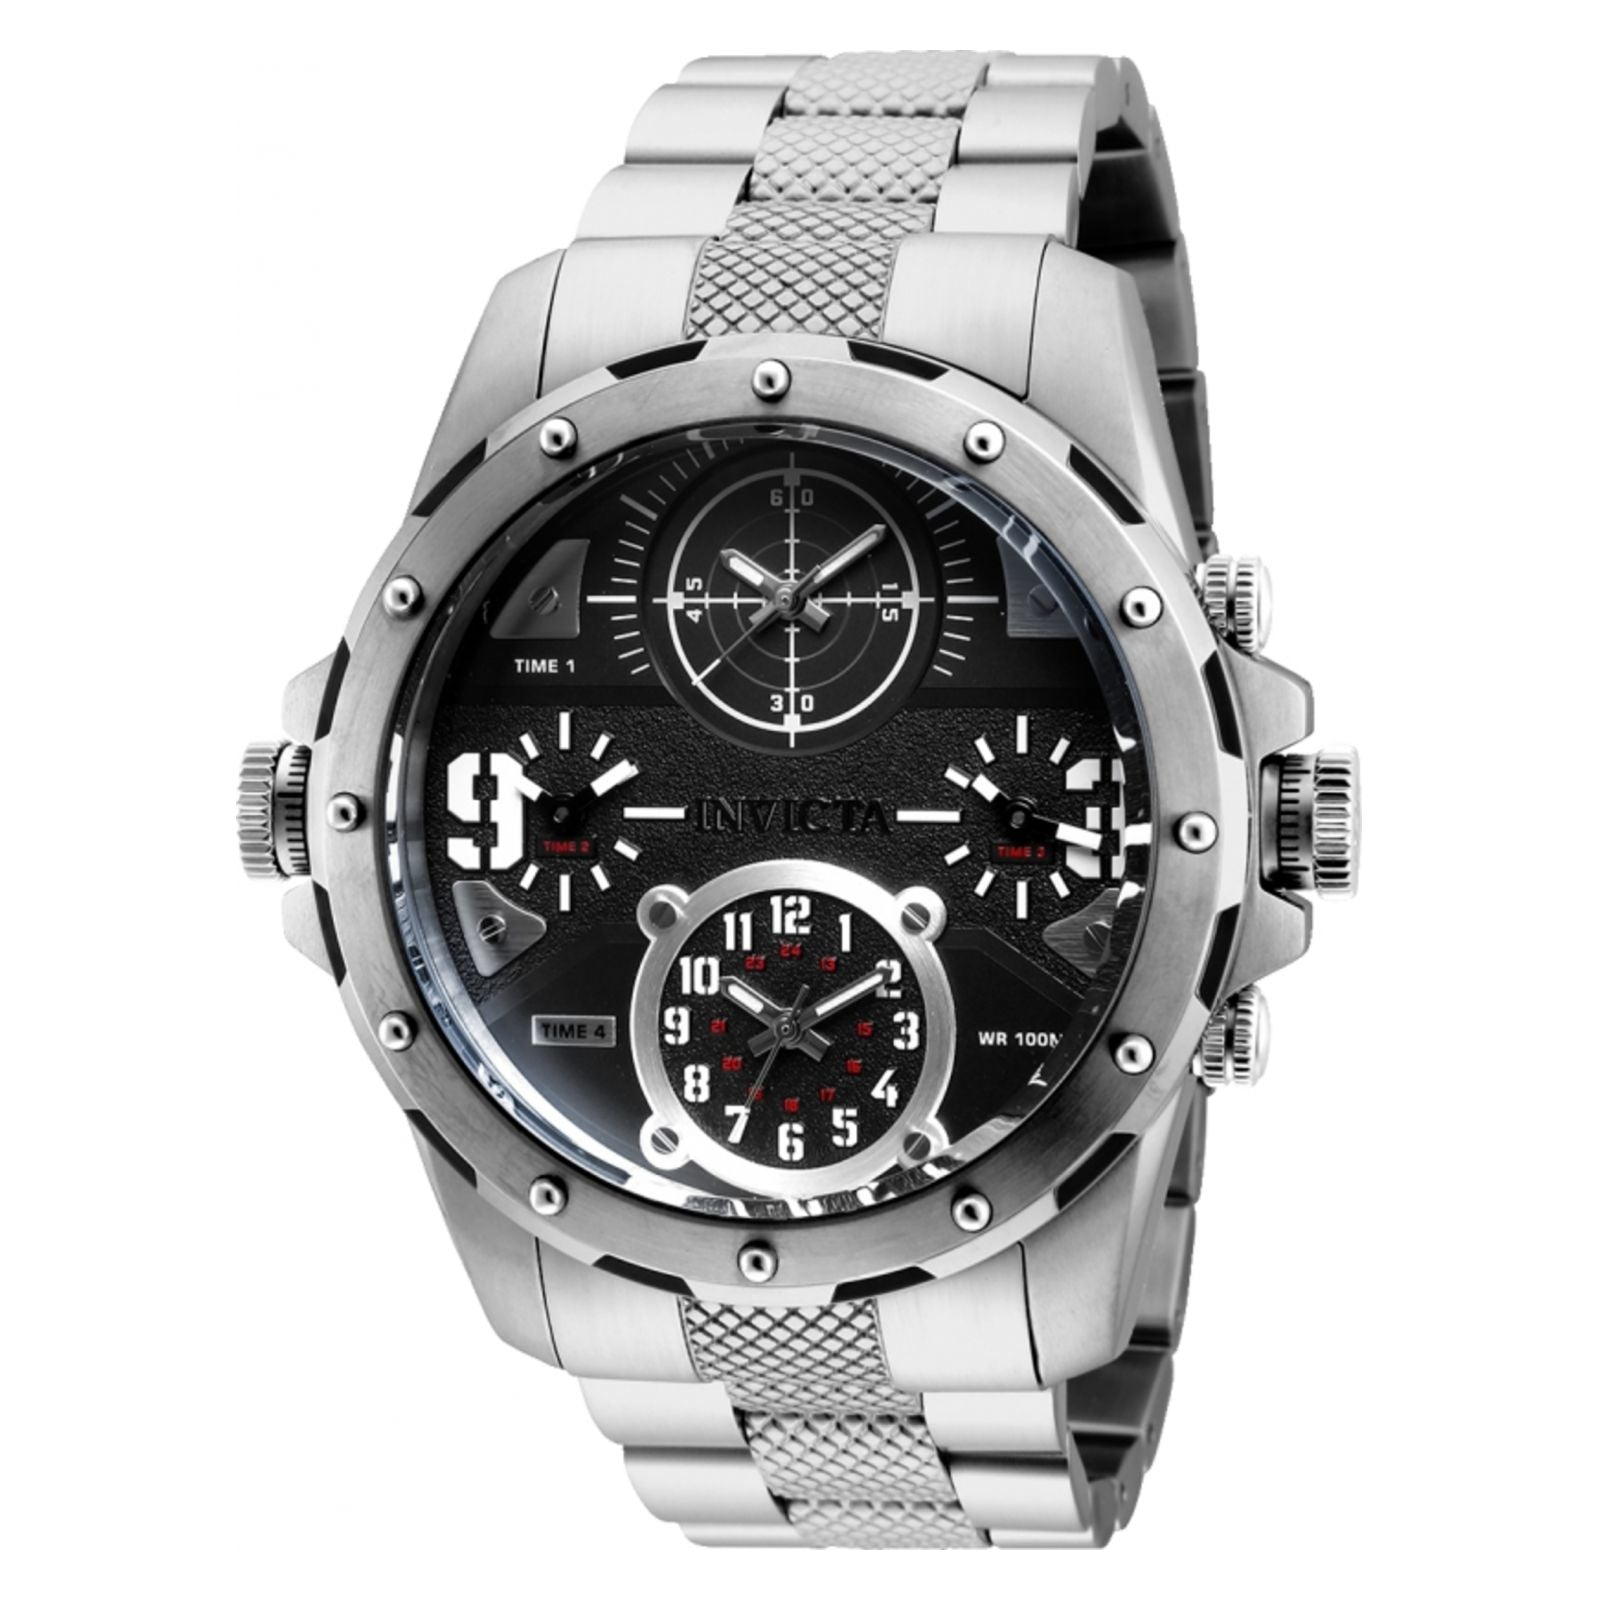 Reloj Invicta Coalition Forces 31146 Hombre - Invicta